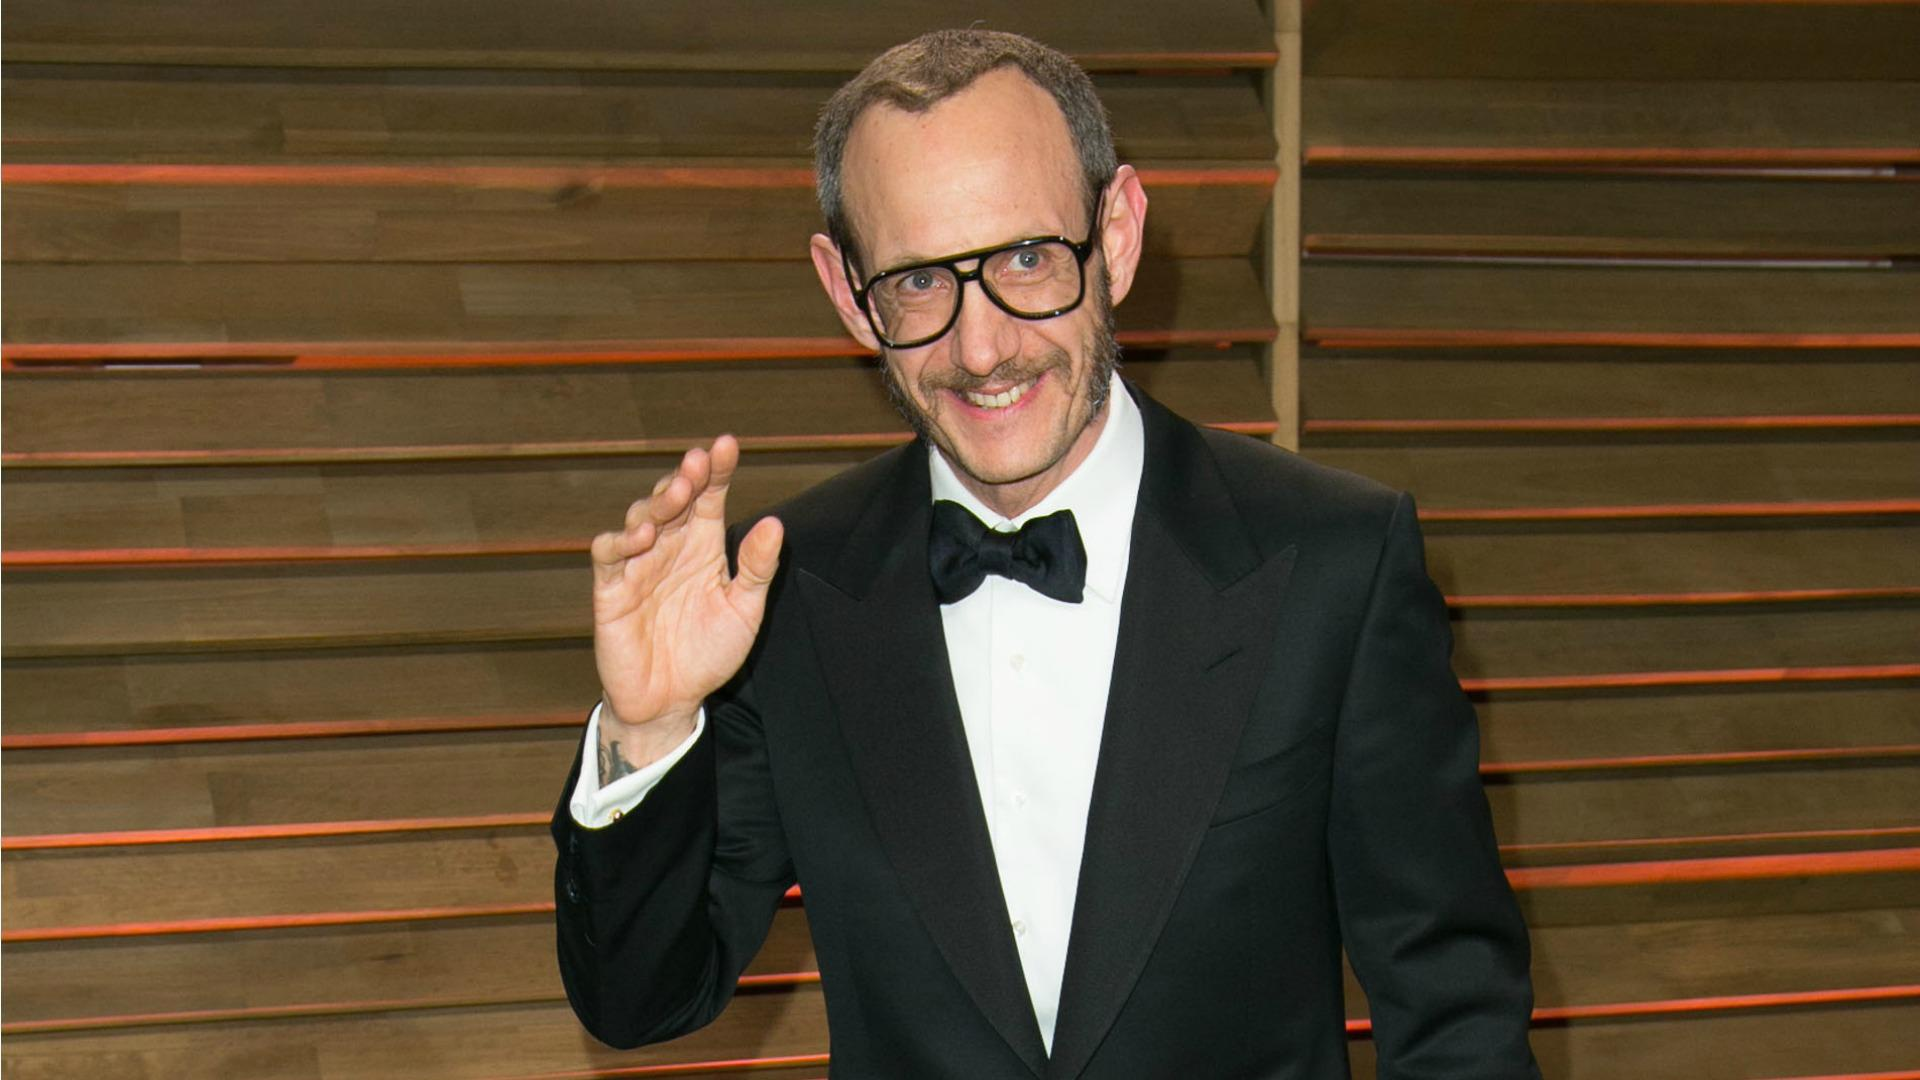 Terry Richardson has no regrets, slams sexual allegations